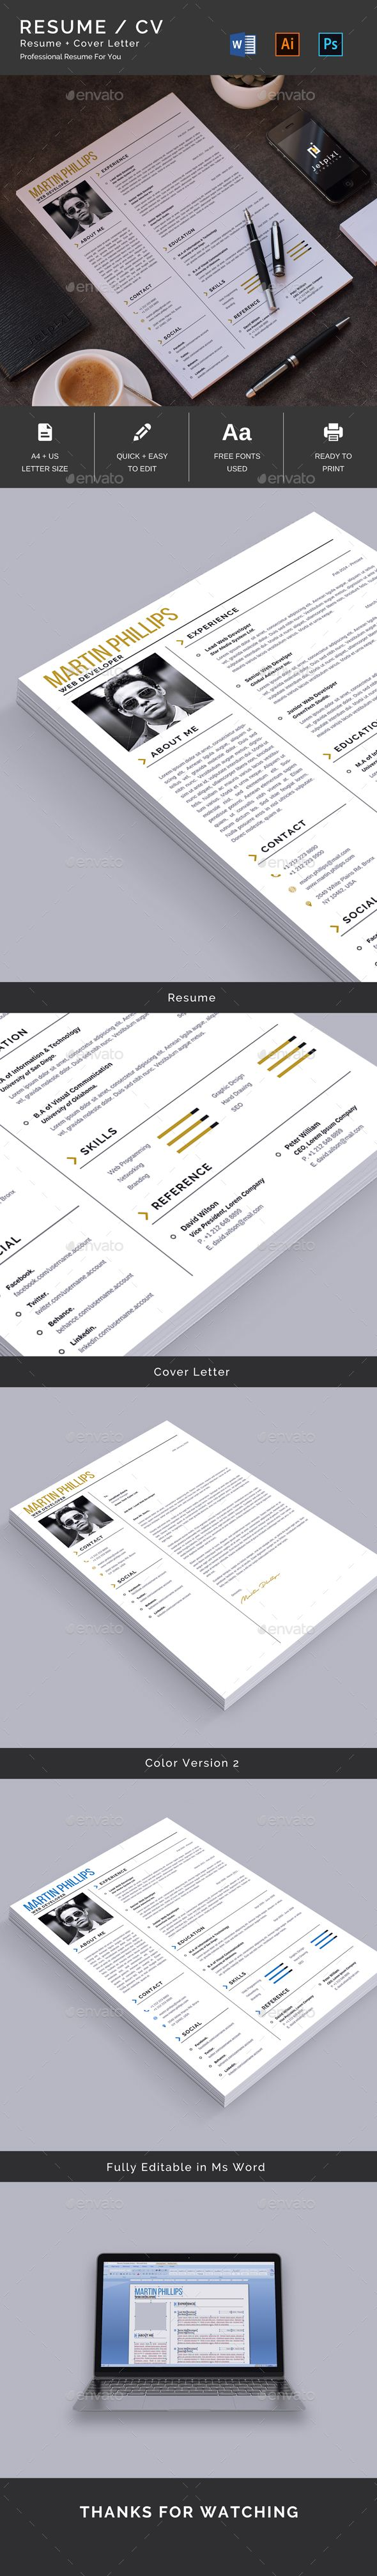 Template For A Cover Letter For A Resume%0A cover letter for on campus job